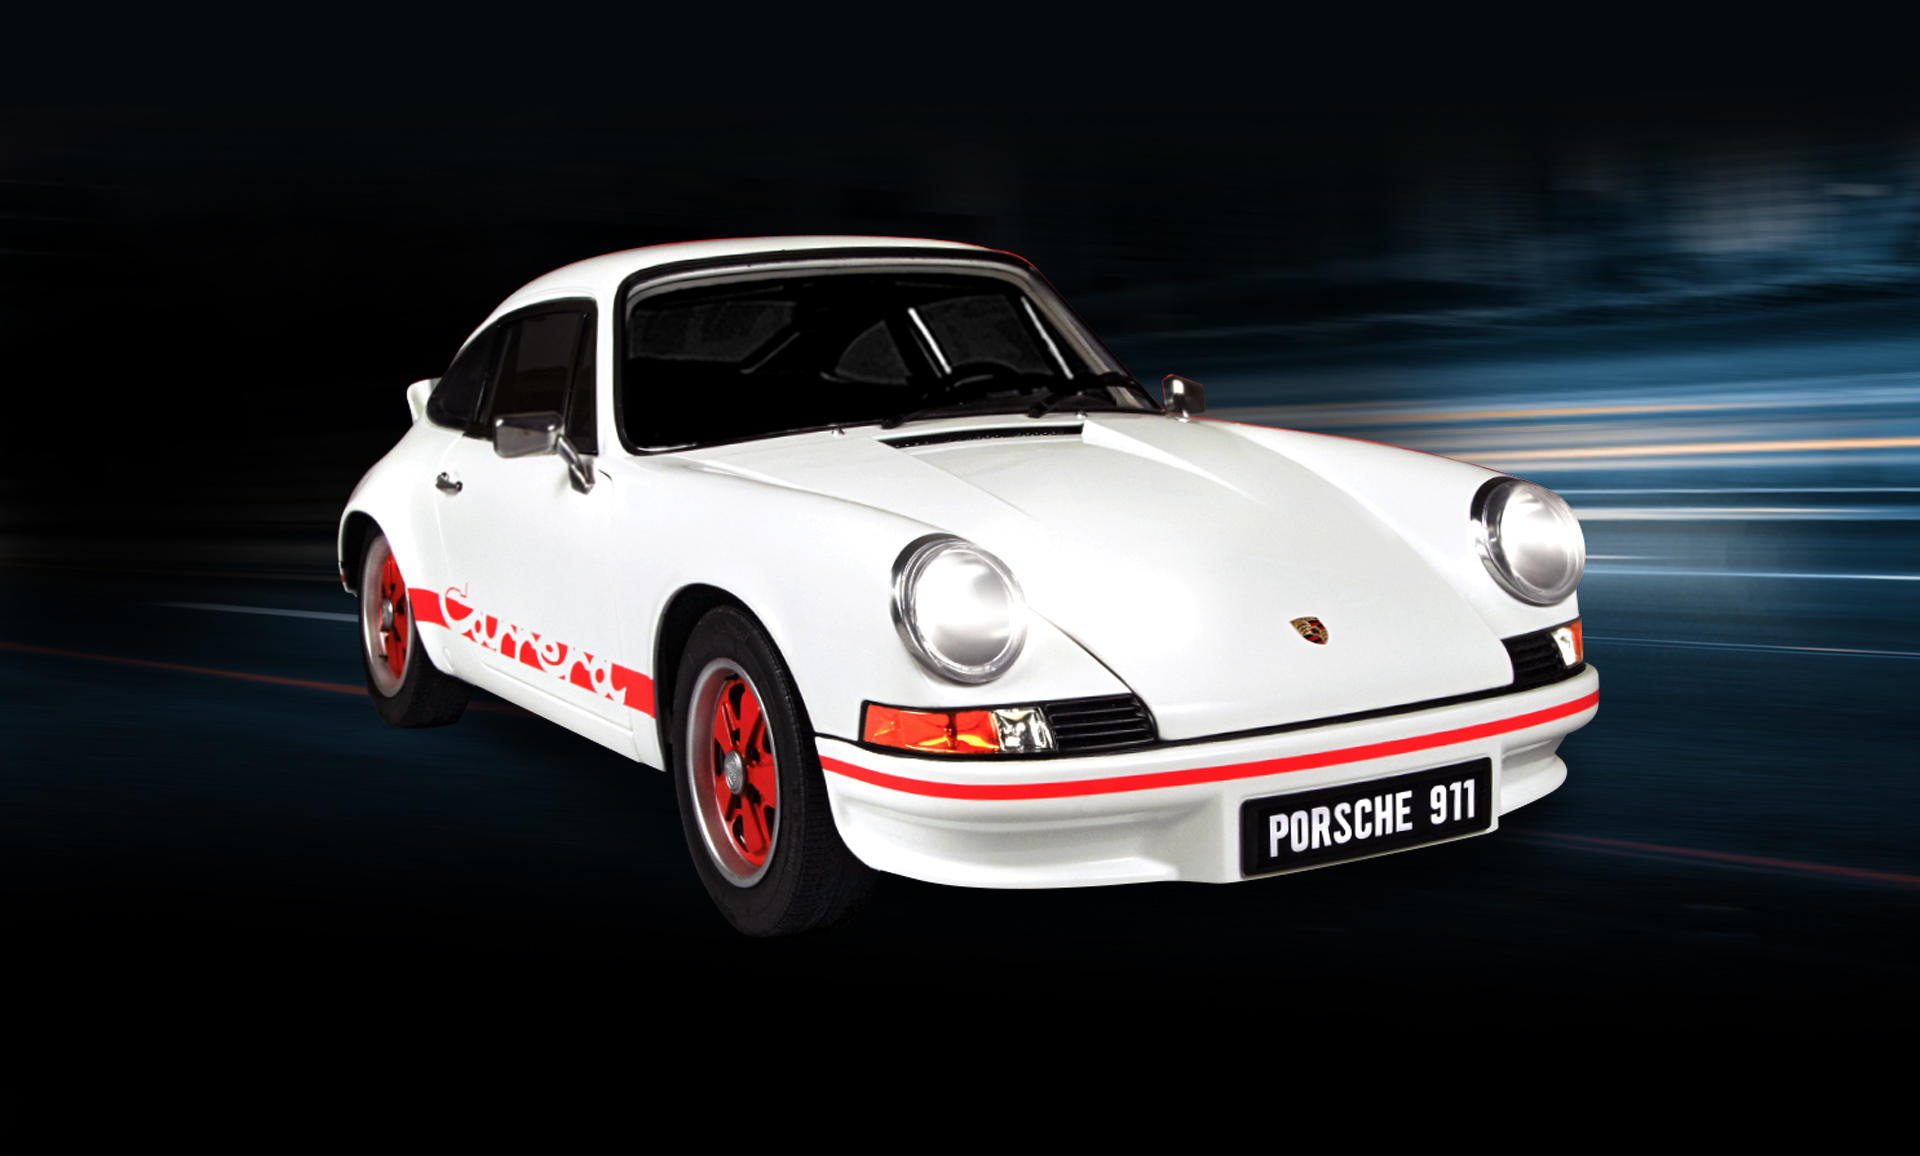 Porsche 911 History And Evolution Of A Classic Sports Car Model